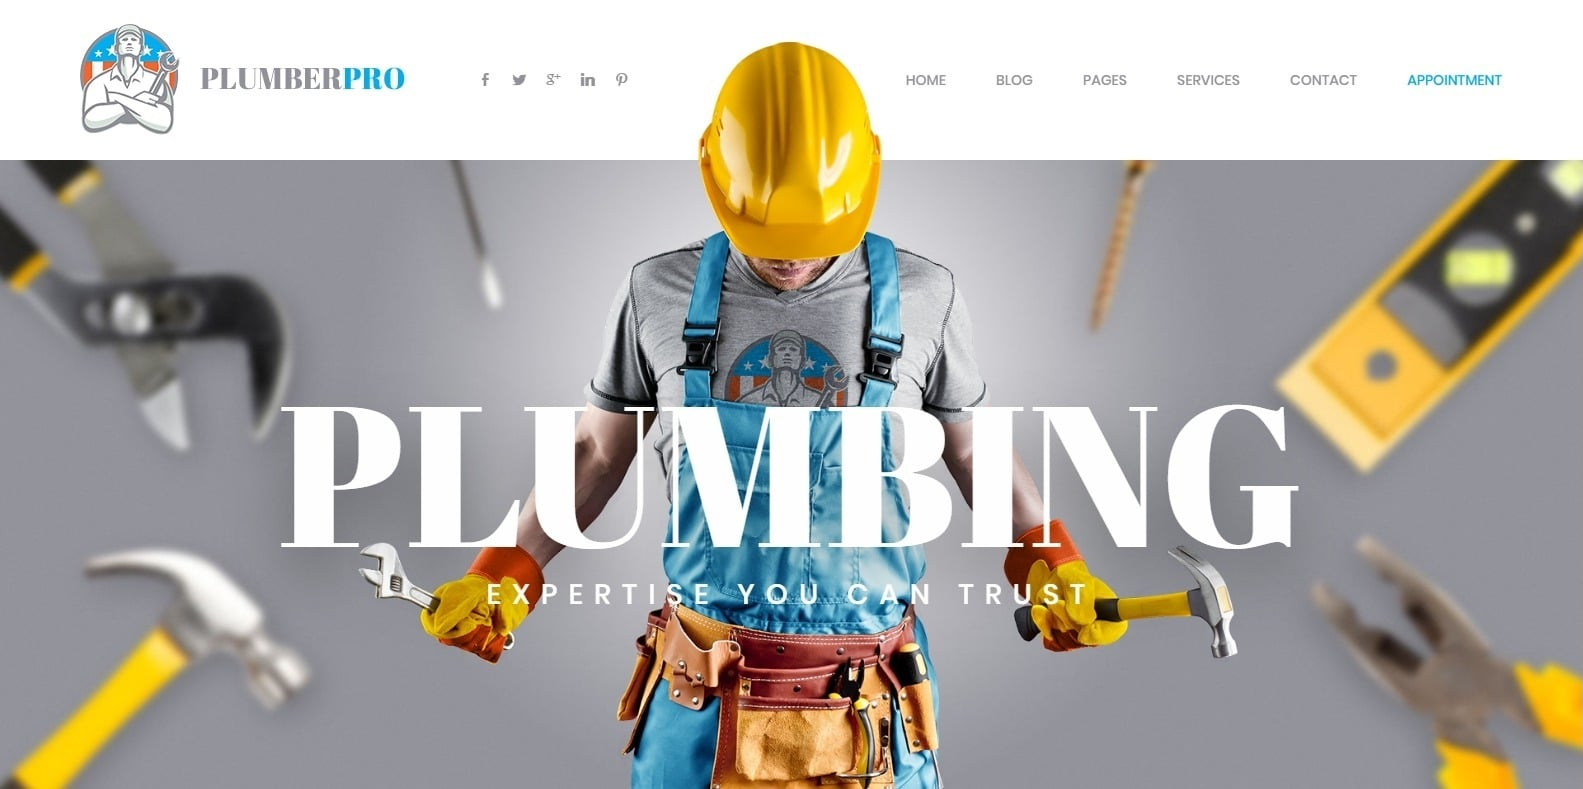 plumberpro-handyman-website-template-wordpress